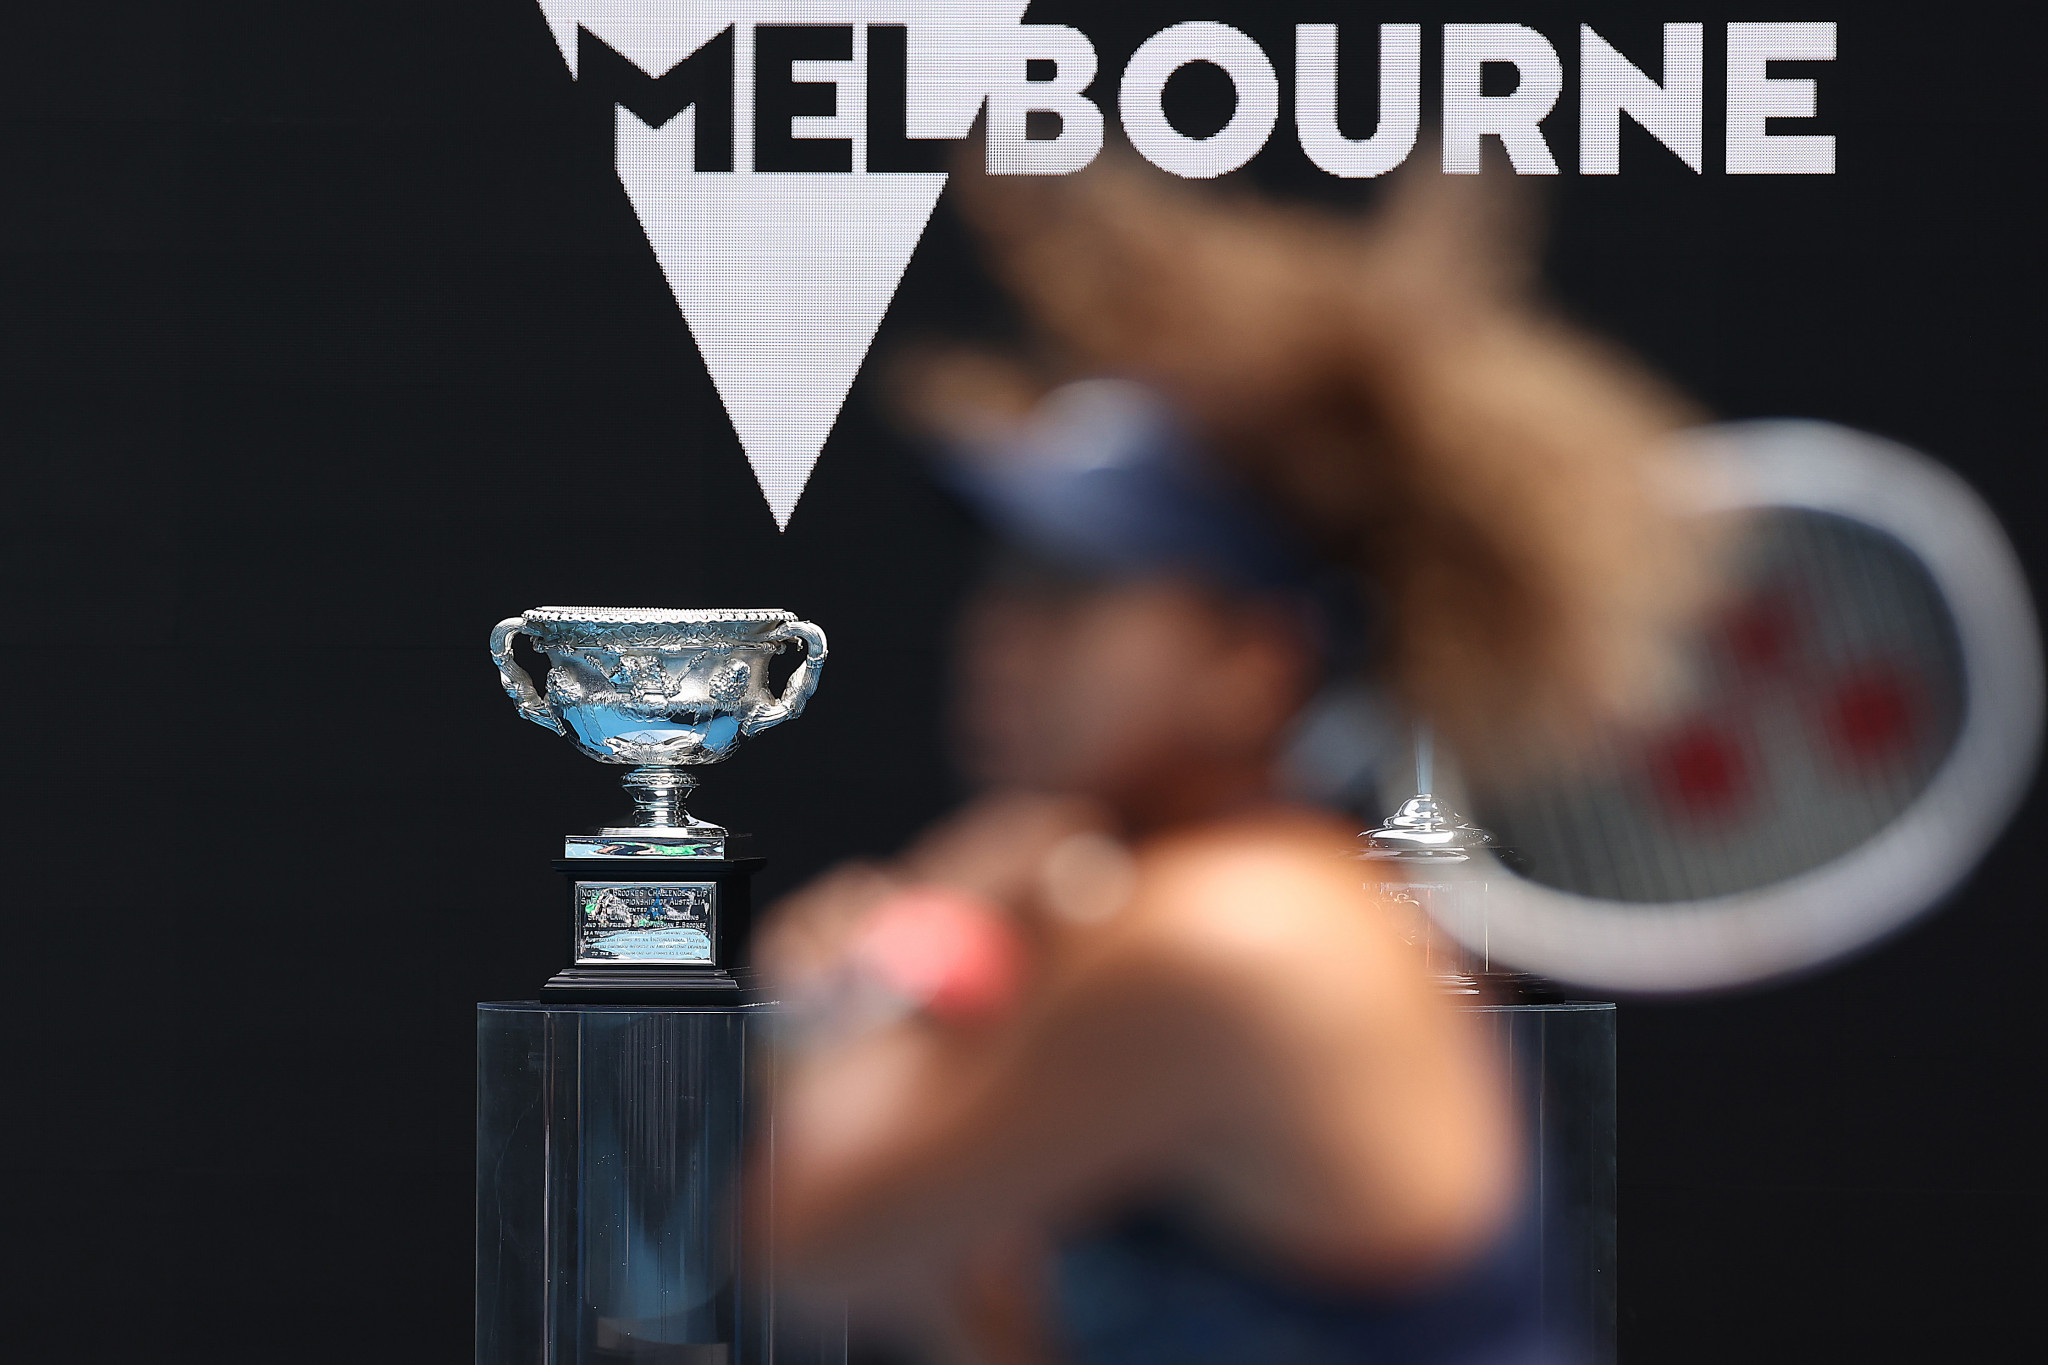 Osaka previously won the Australian Open in 2019 ©Getty Images